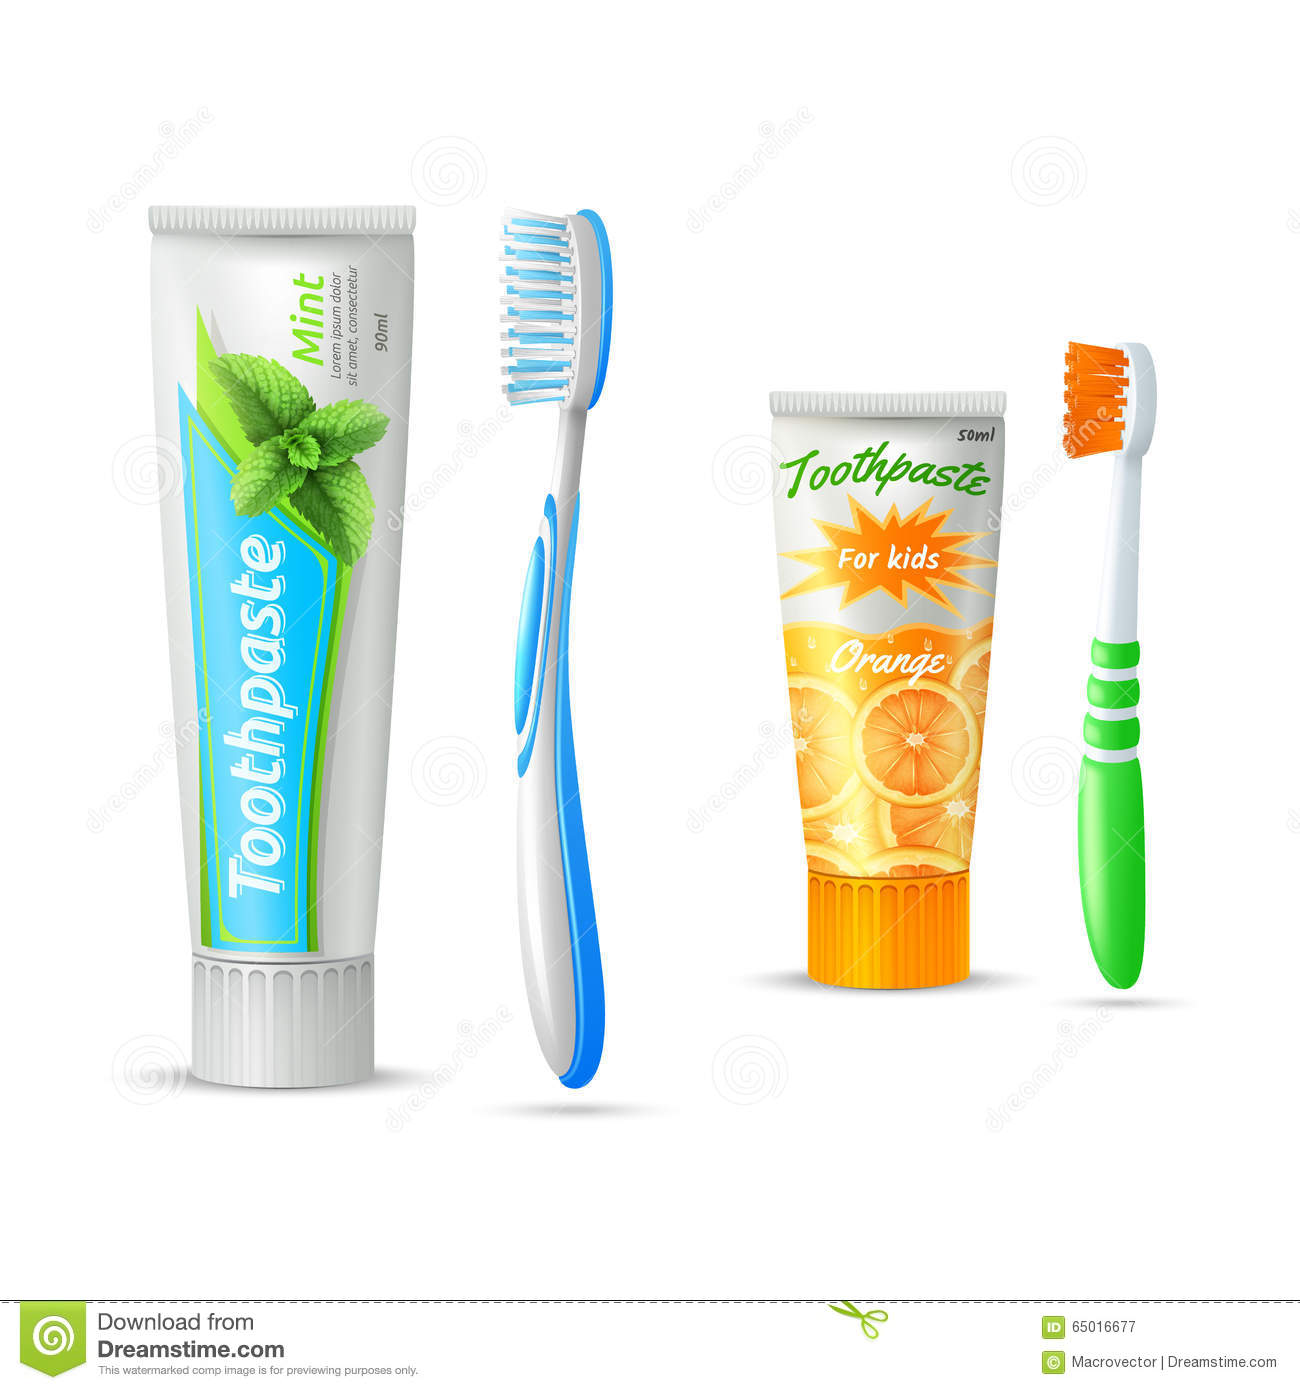 Toothpaste And Toothbrush For Kids And Adults Stock Vector ...